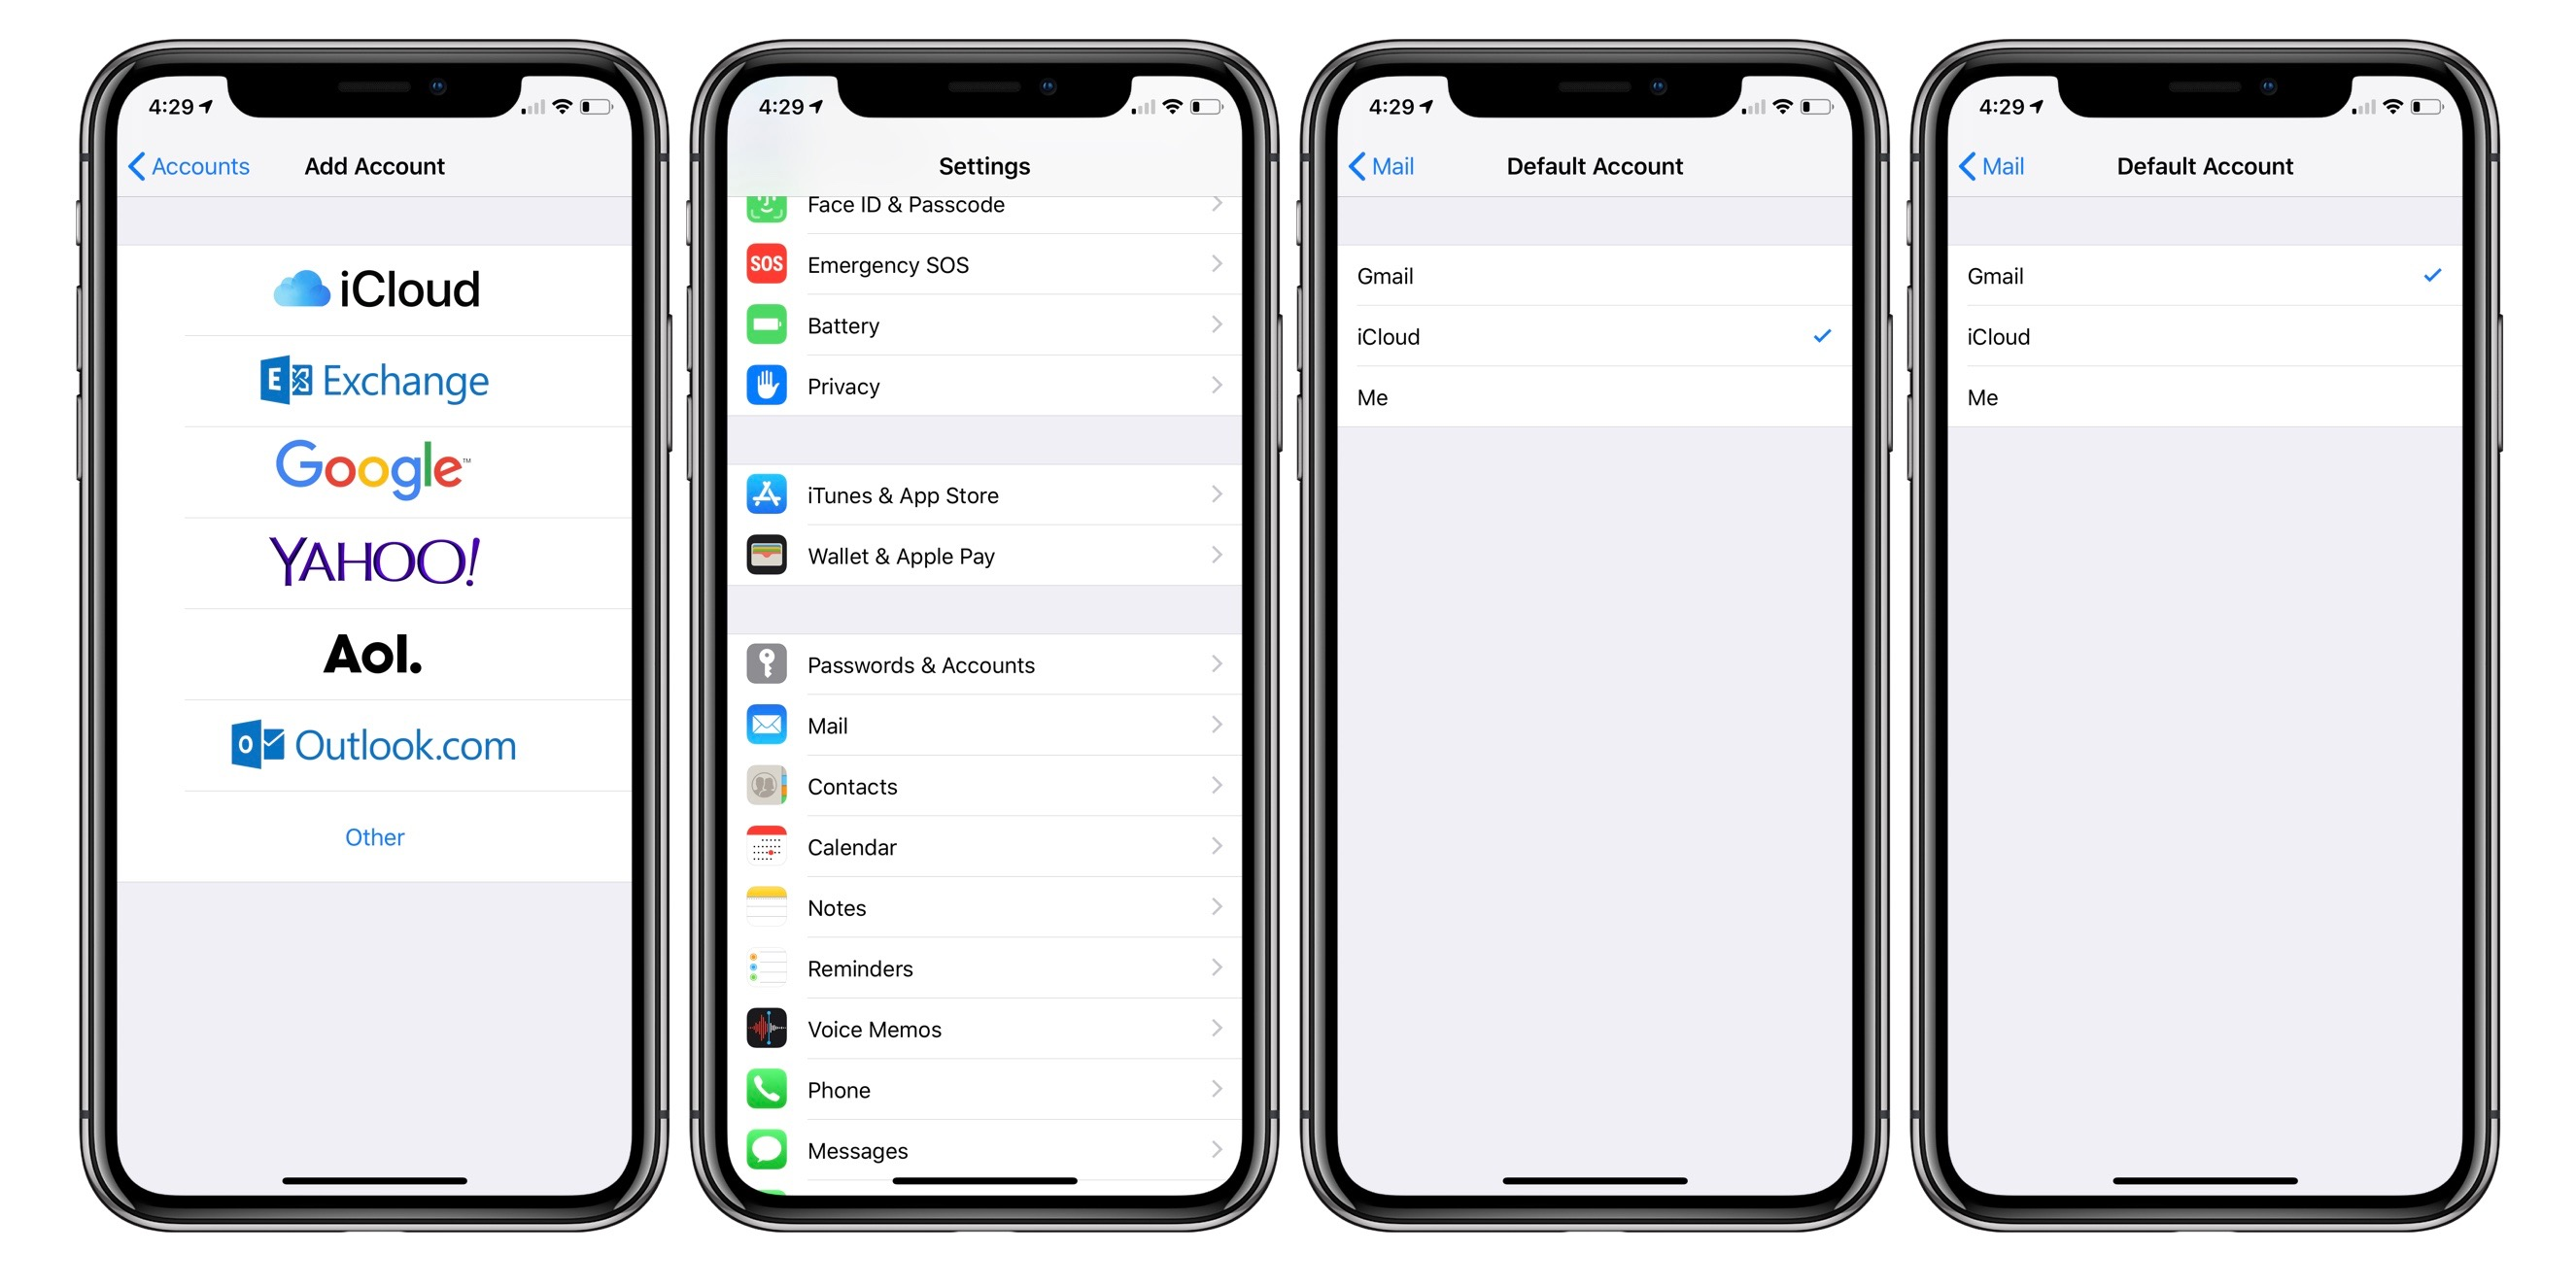 How to change the default email account on iPhone